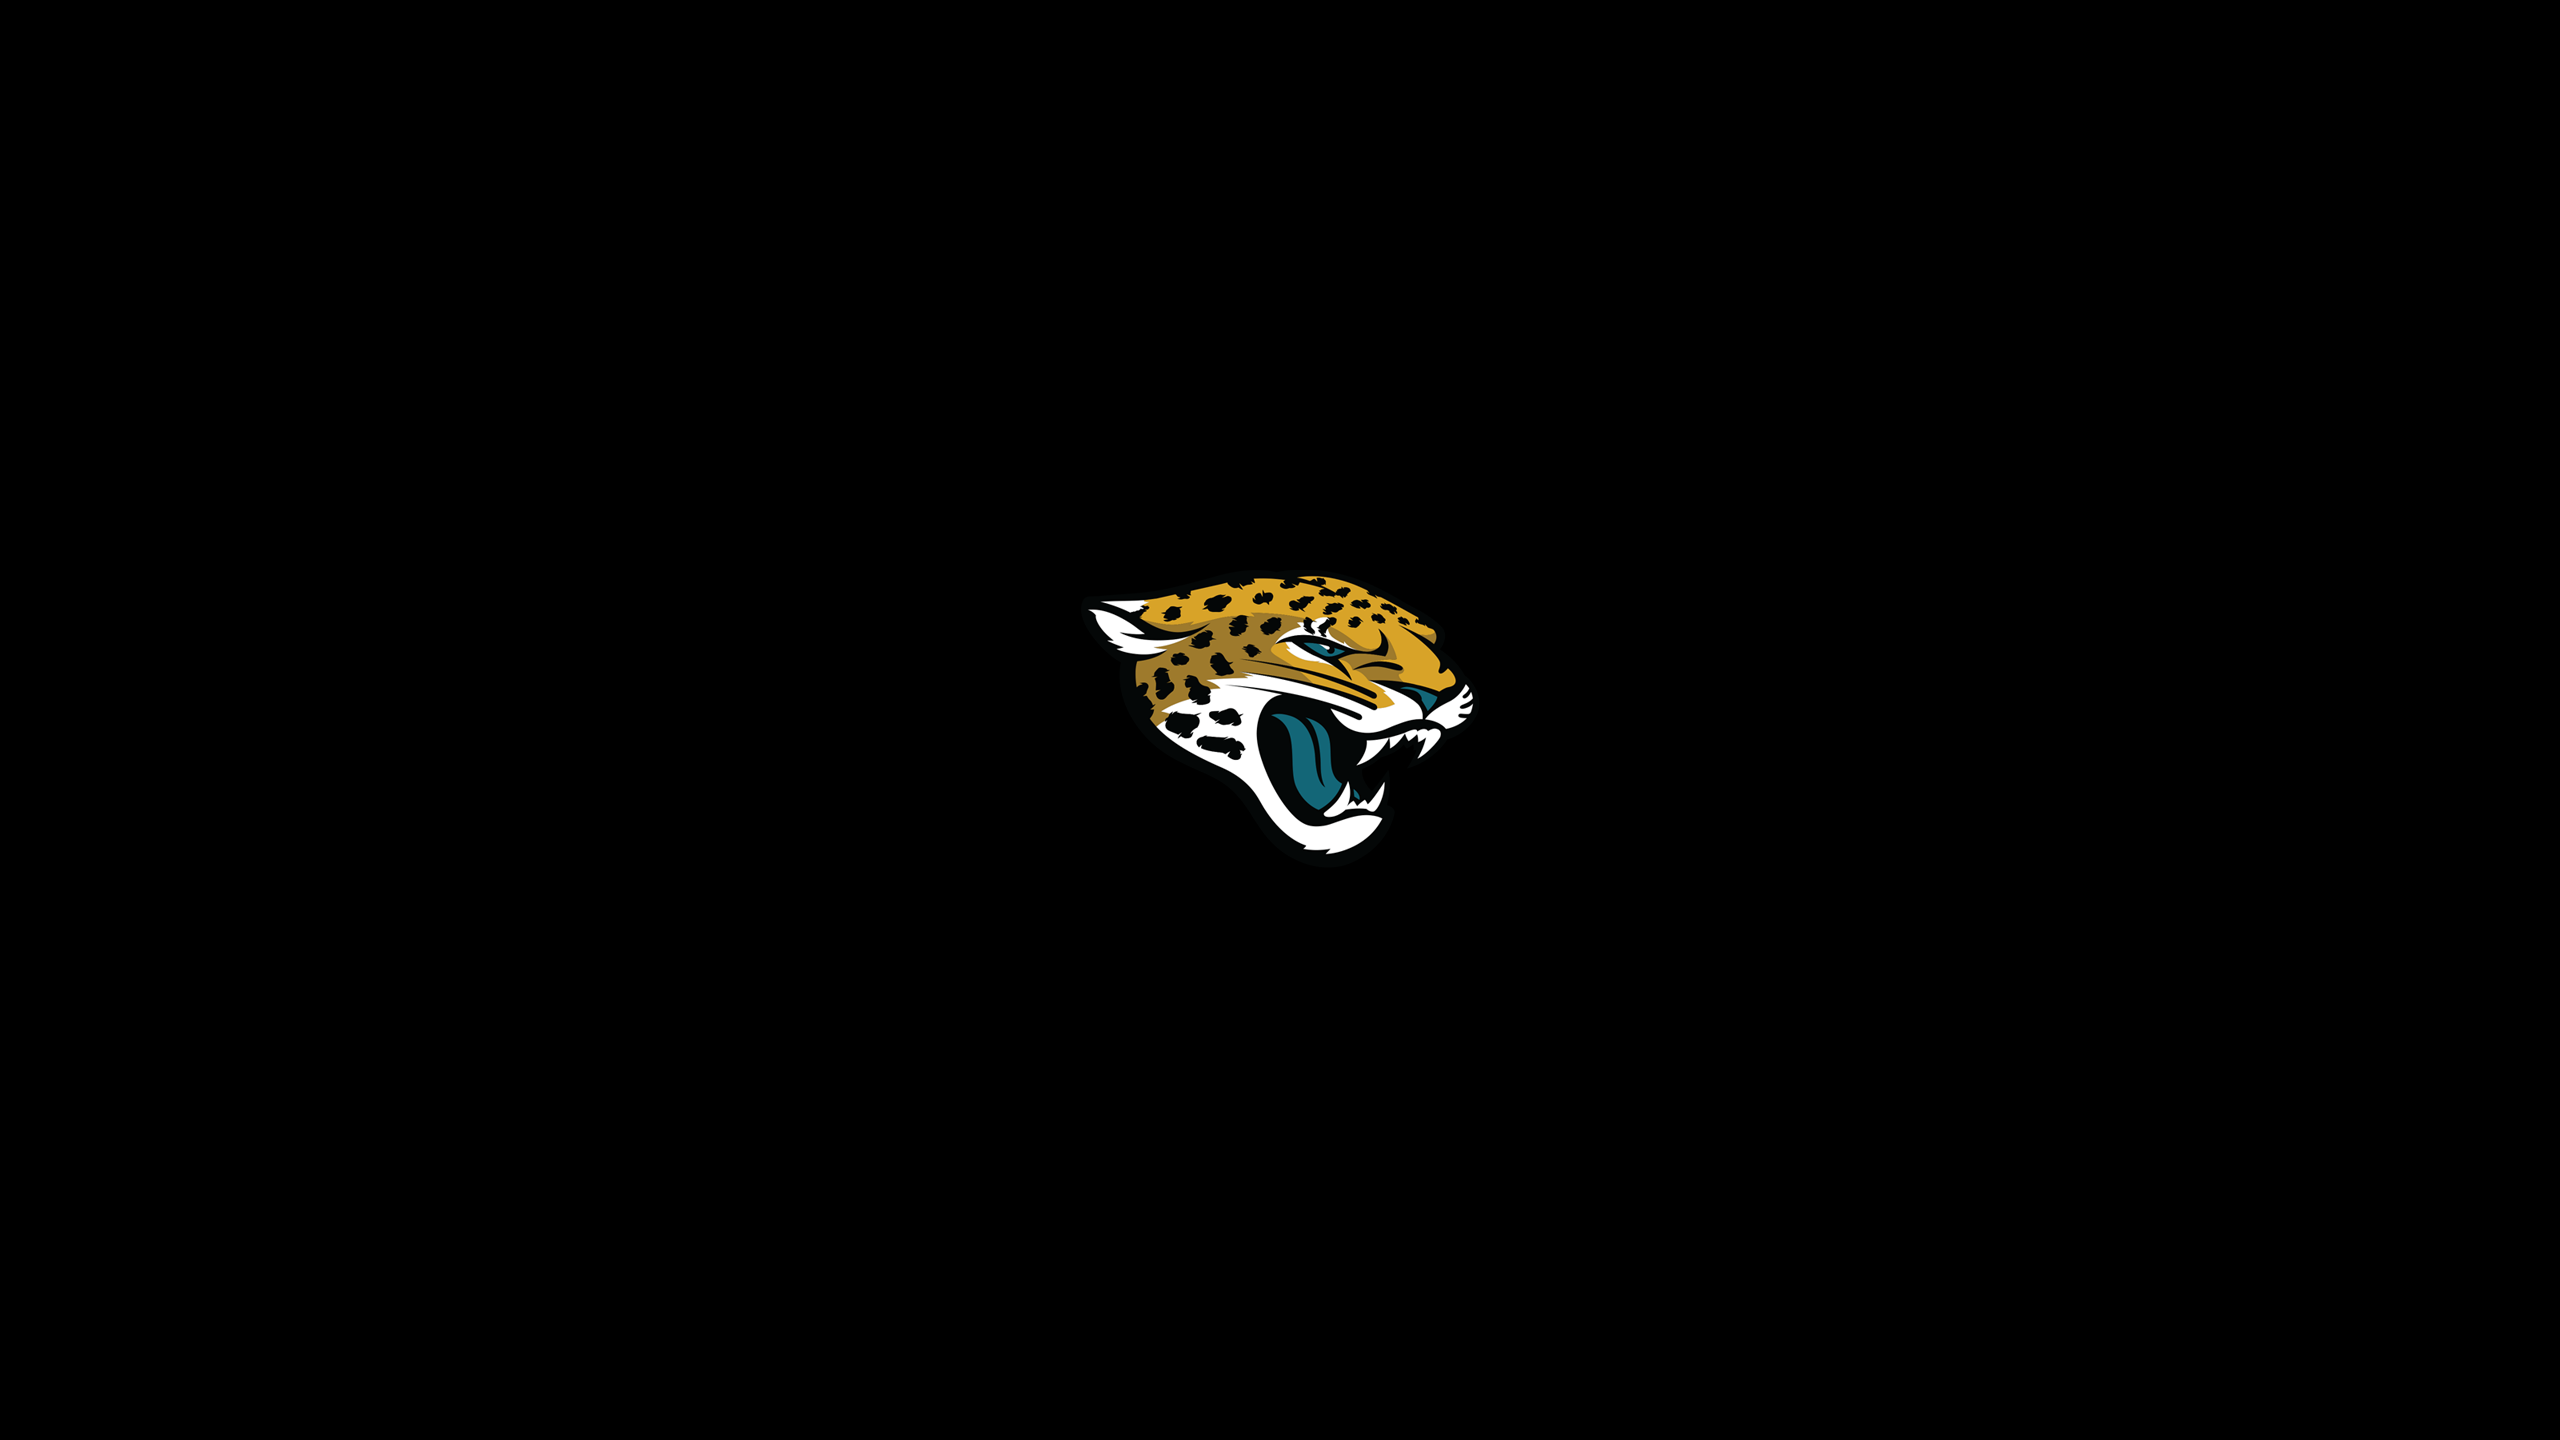 Top Beautiful Jacksonville Jaguars Photos, 2560x1440